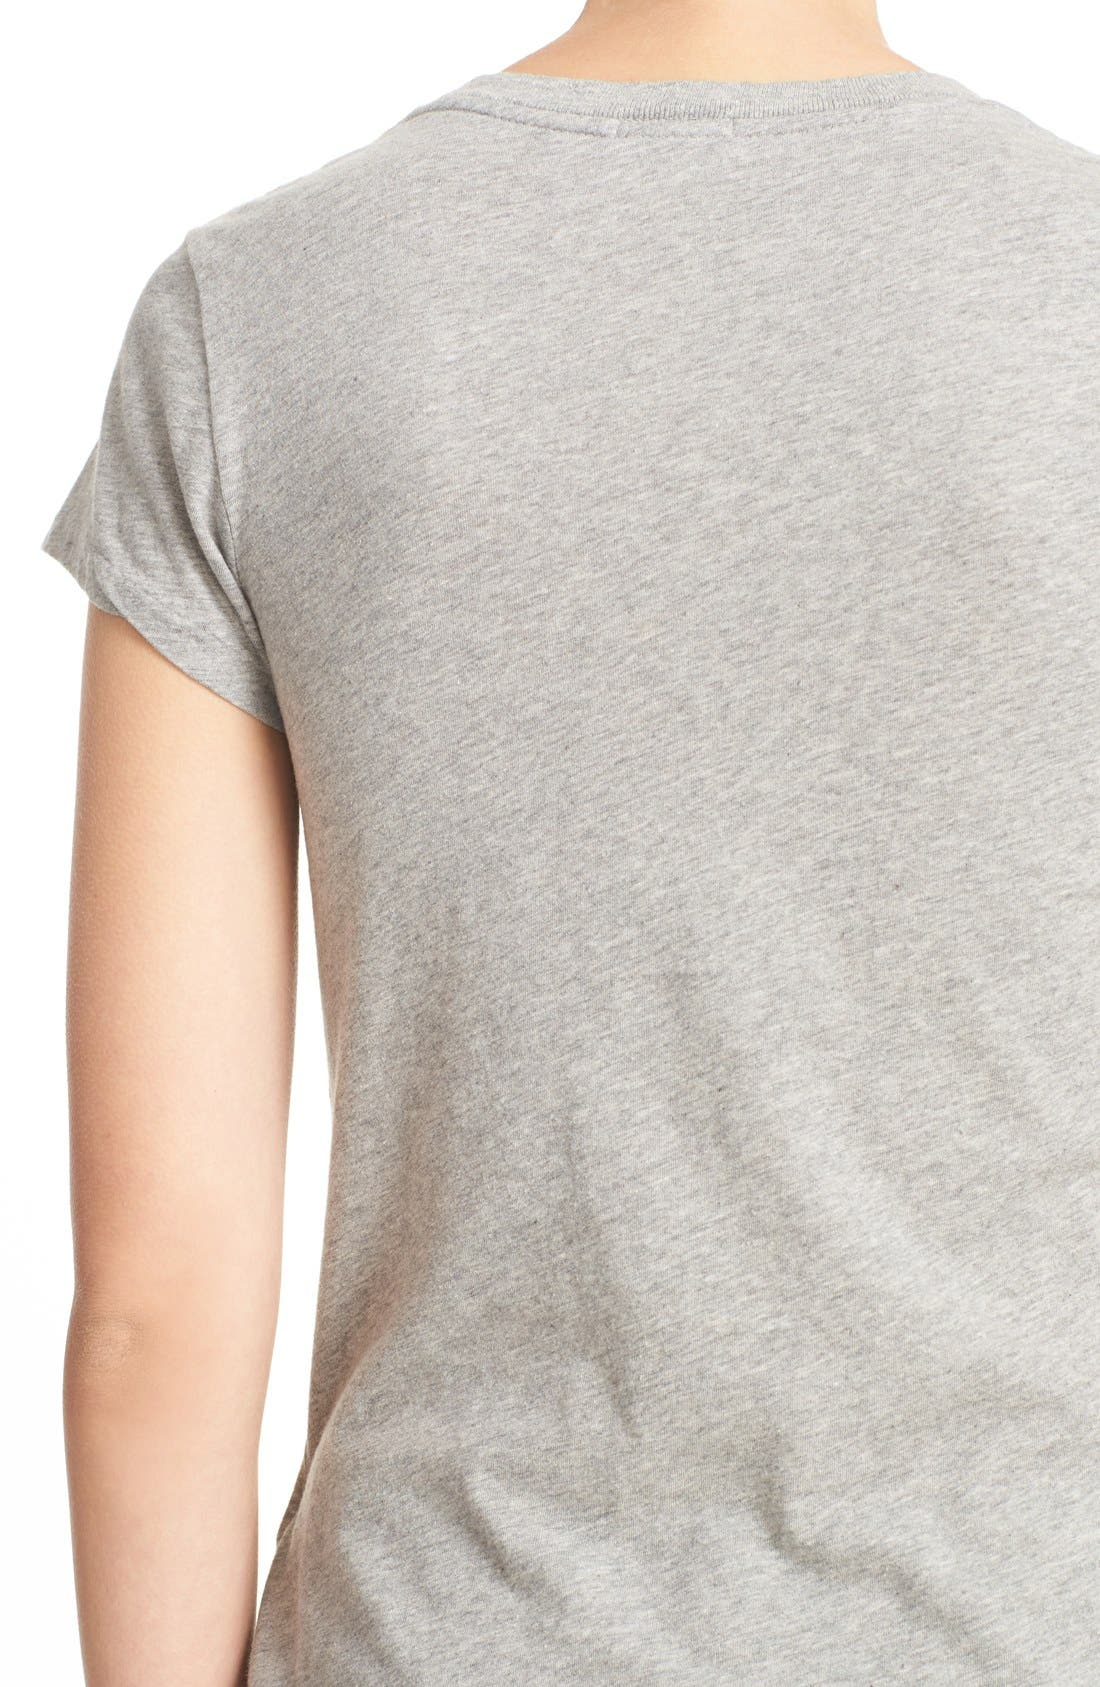 x Hanes '1960s Slim' V-Neck Tee,                             Alternate thumbnail 5, color,